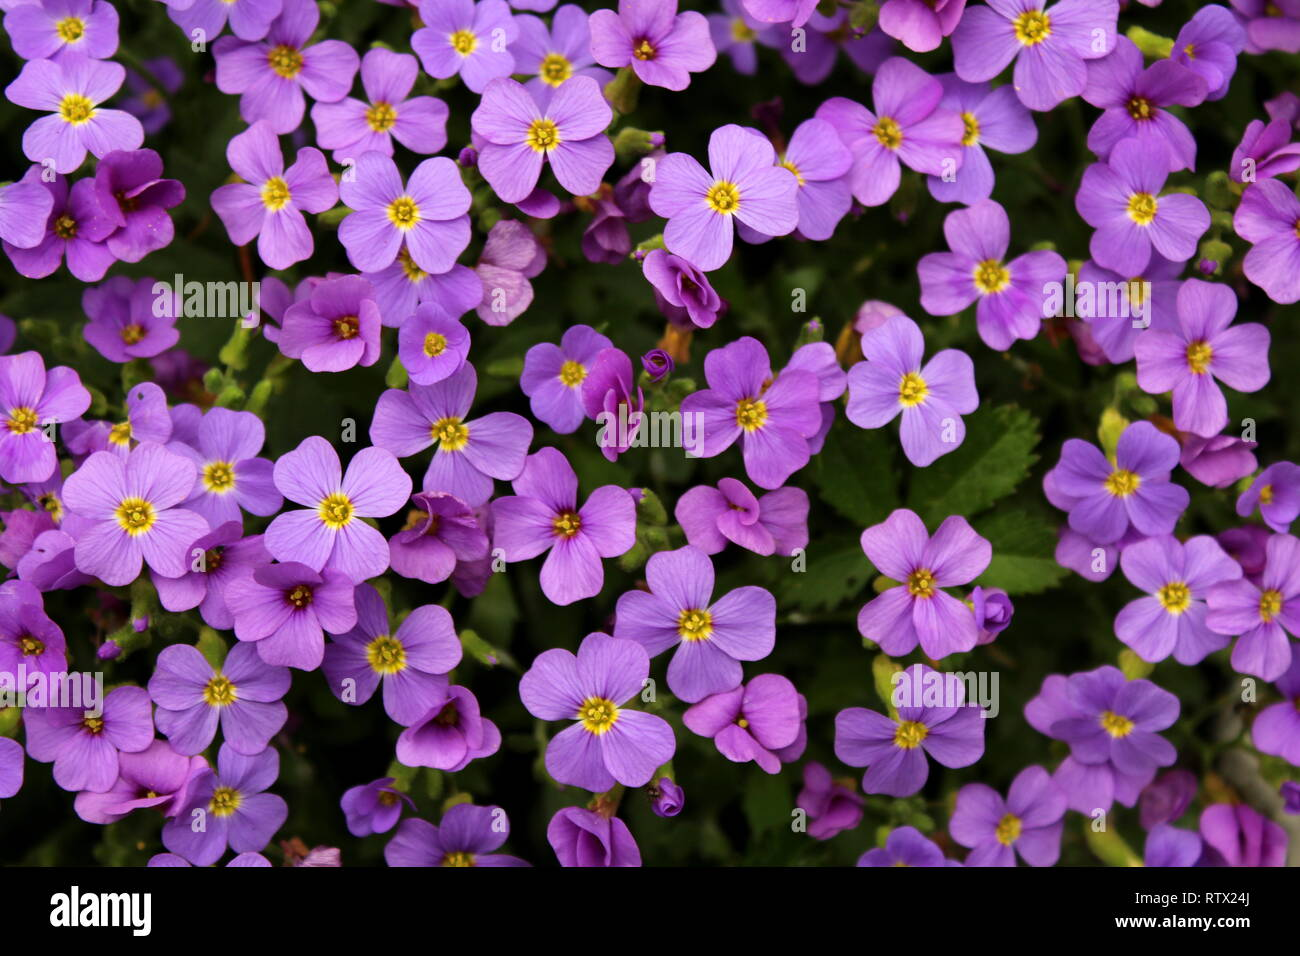 Aubretia Or Aubrieta Low Spreading Hardy Evergreen Perennial